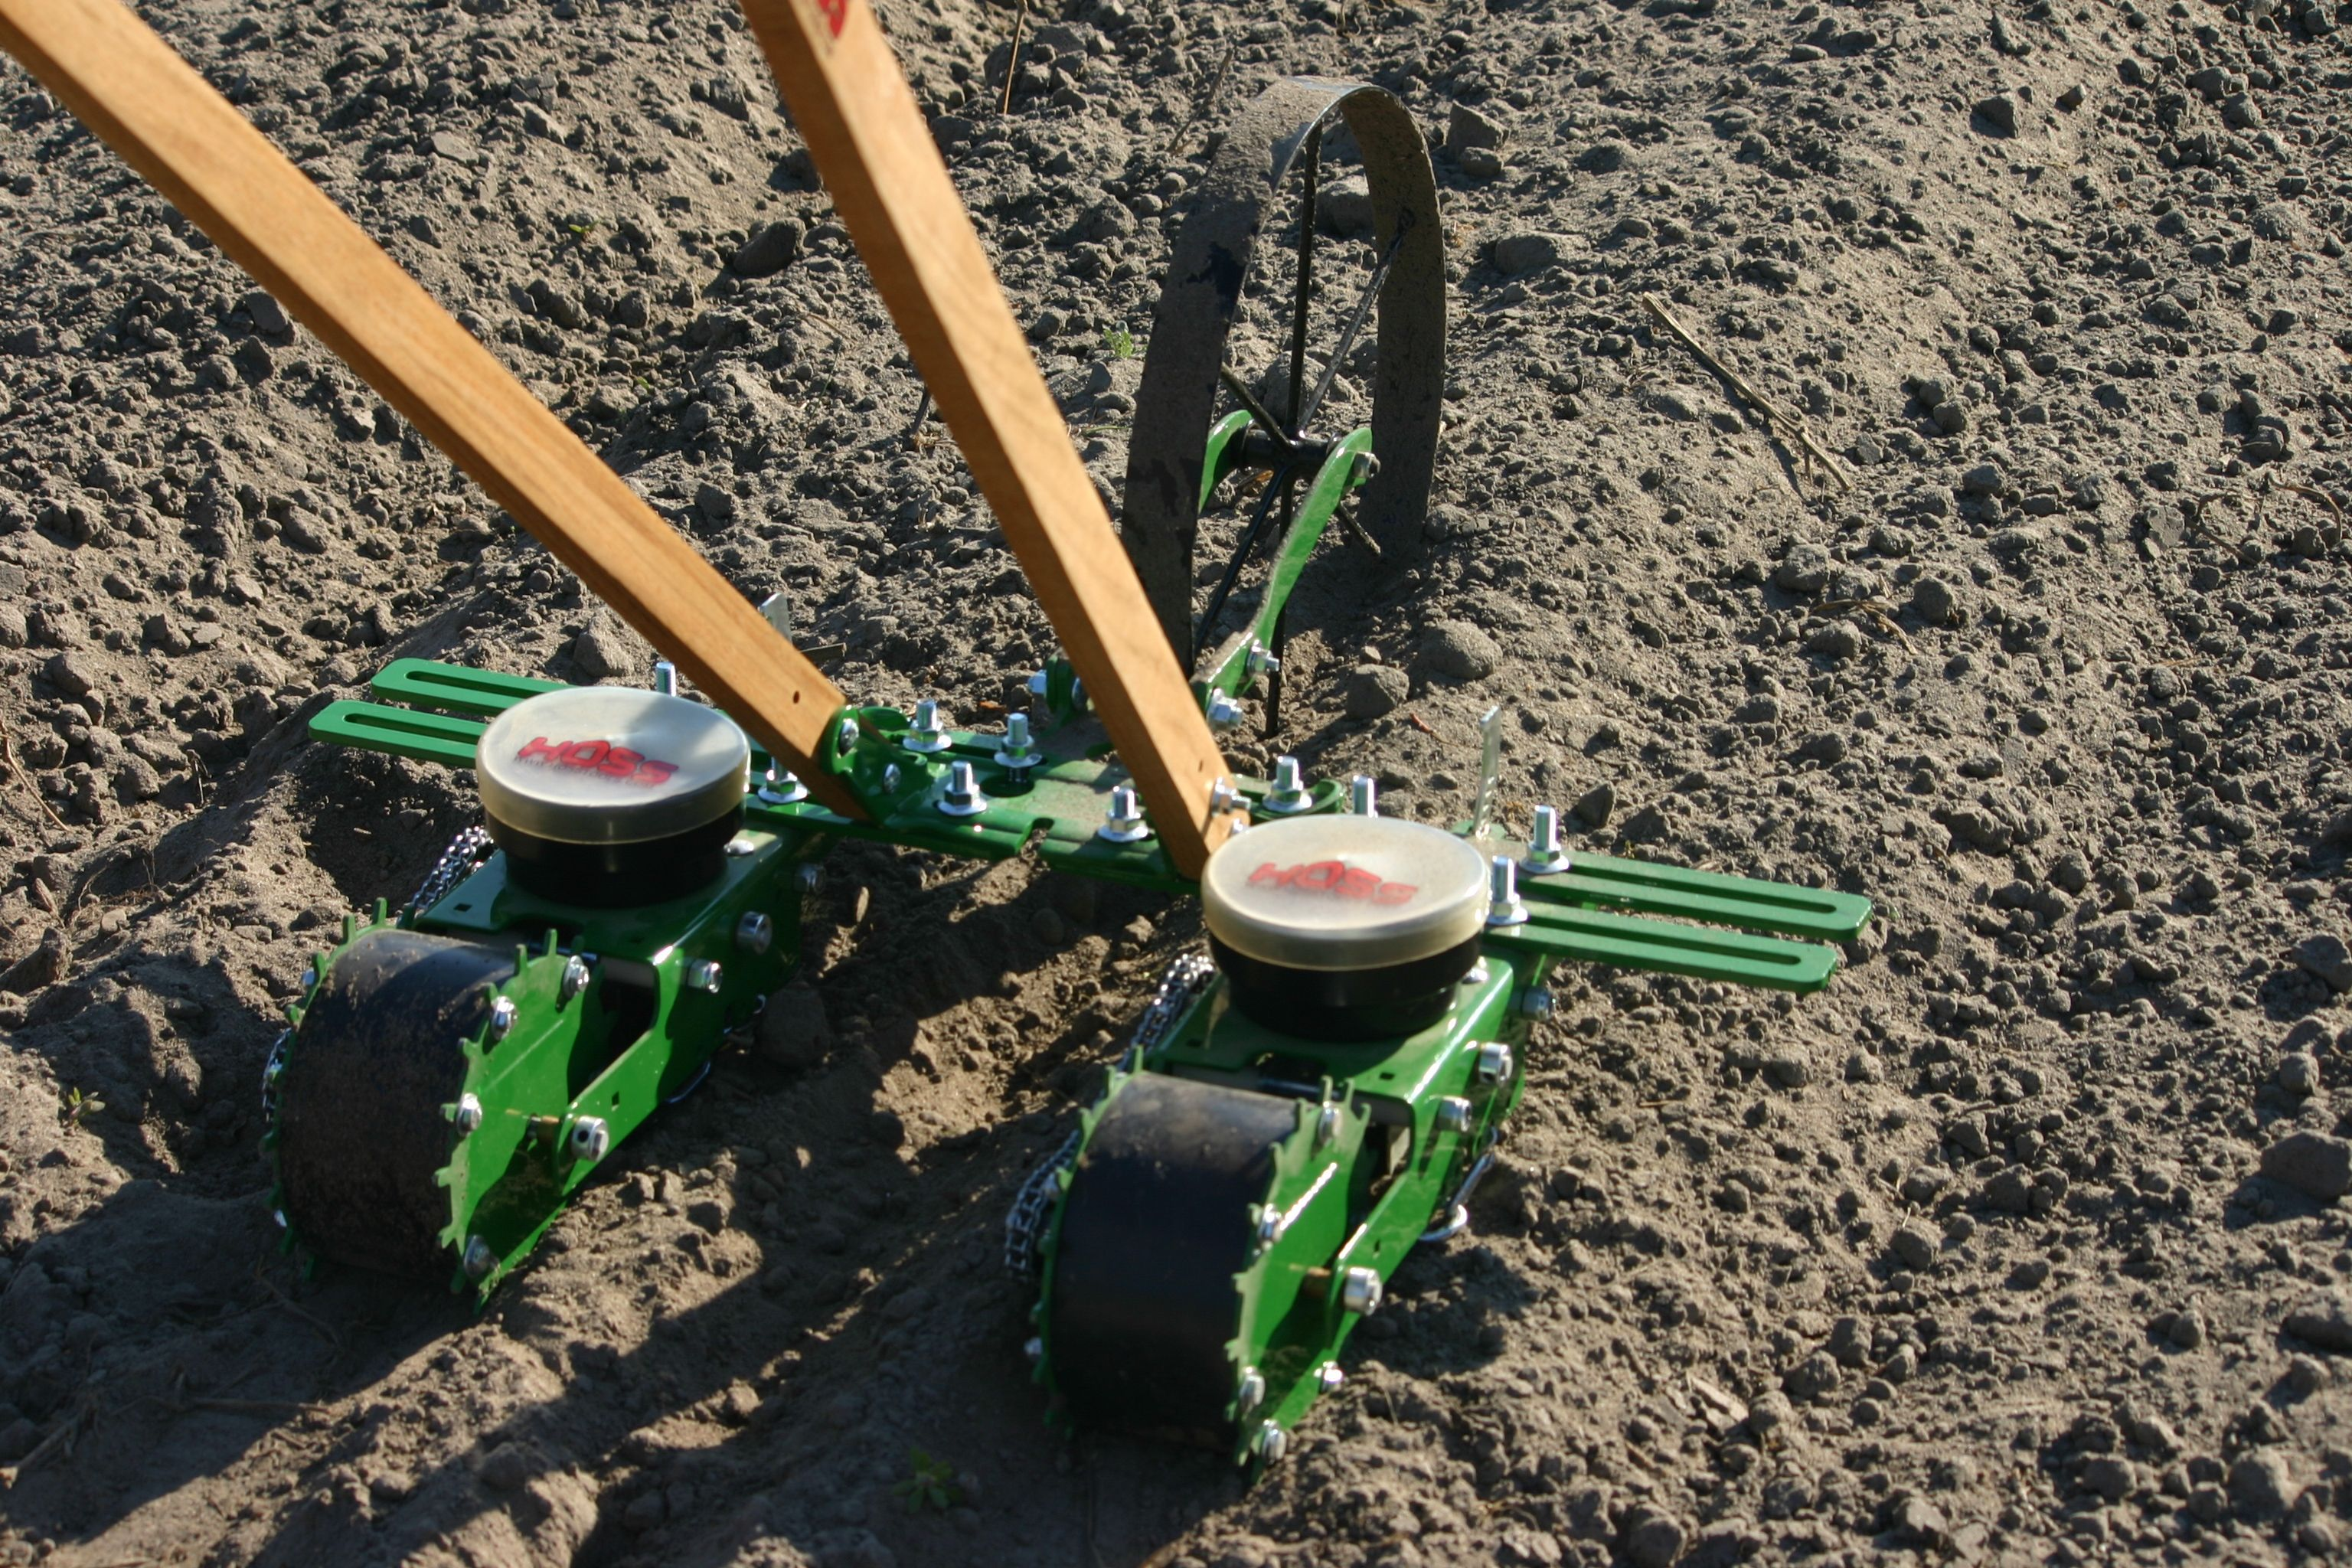 Introducing The Multi Row Seeder This Incredible Wheel Hoe And Seeder Setup Allows You To Plant Multiple Rows A Planting Carrots Grow Your Own Food Vrt Ideje